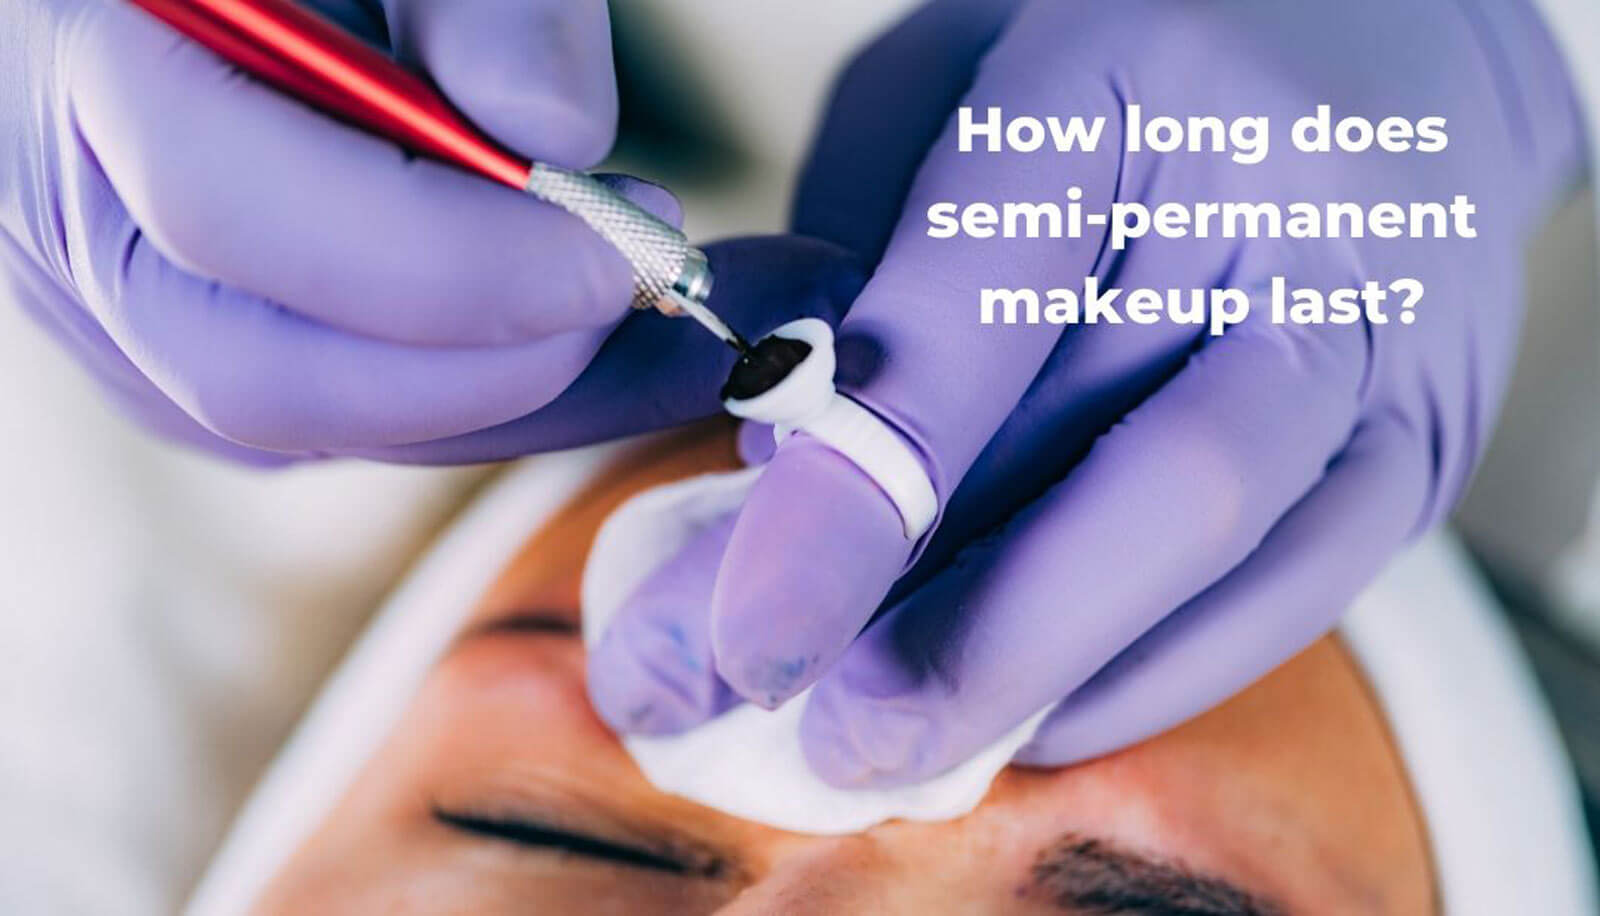 How long does semi-permanent makeup last?